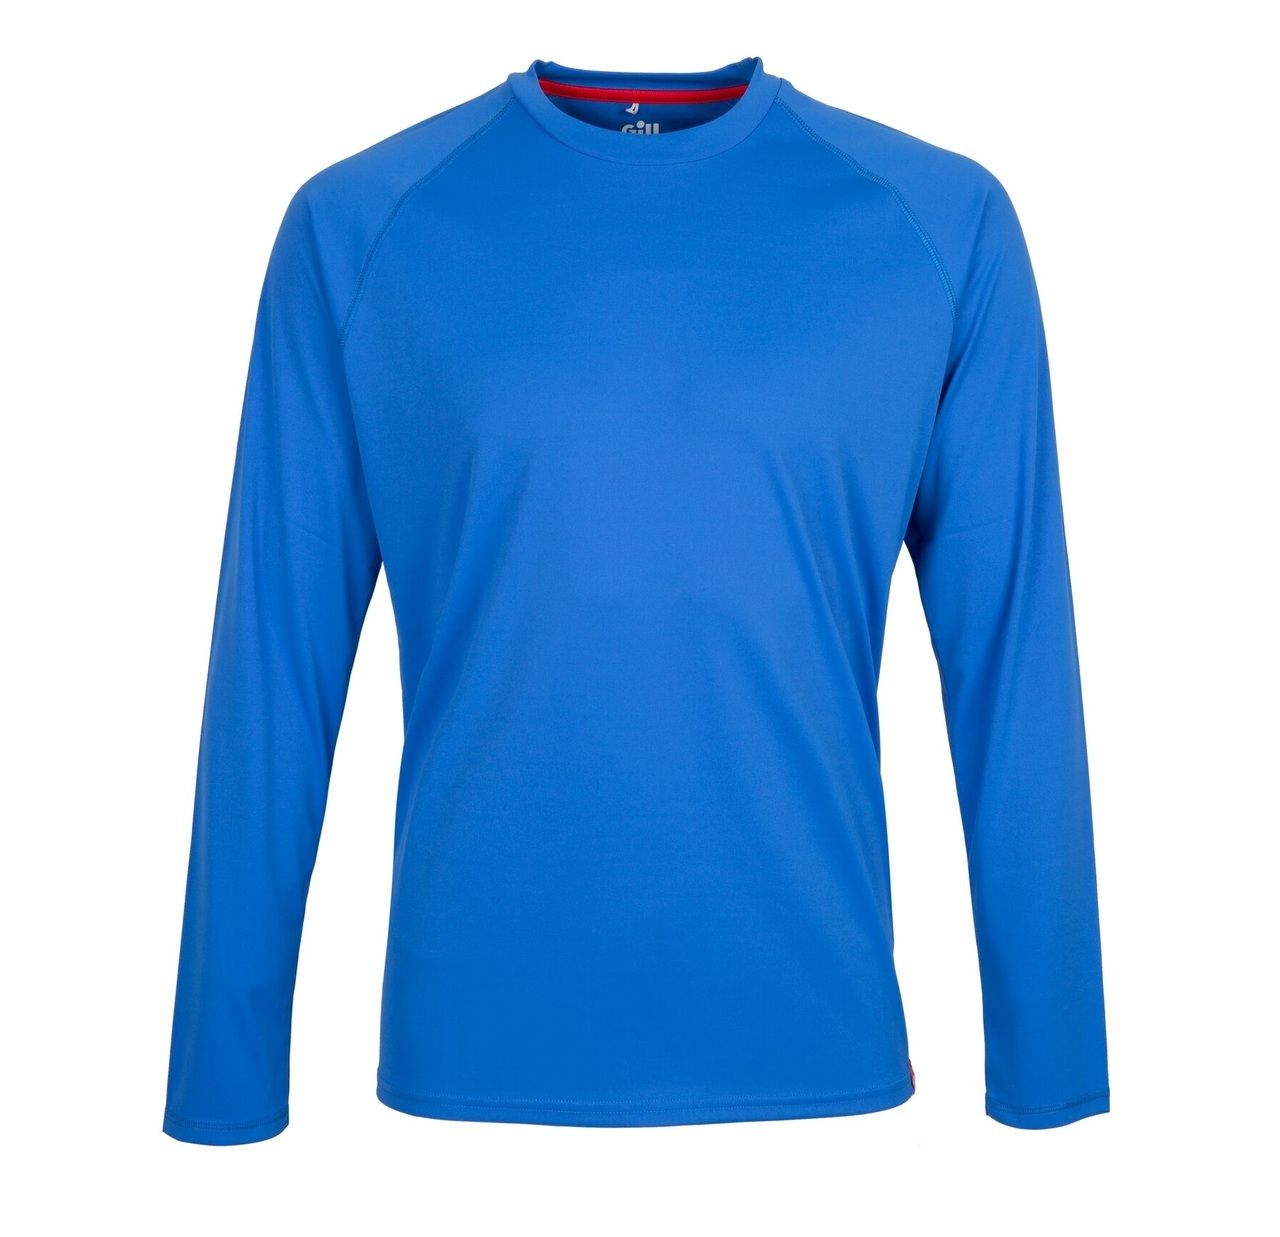 Shop All UV Technical Shirts